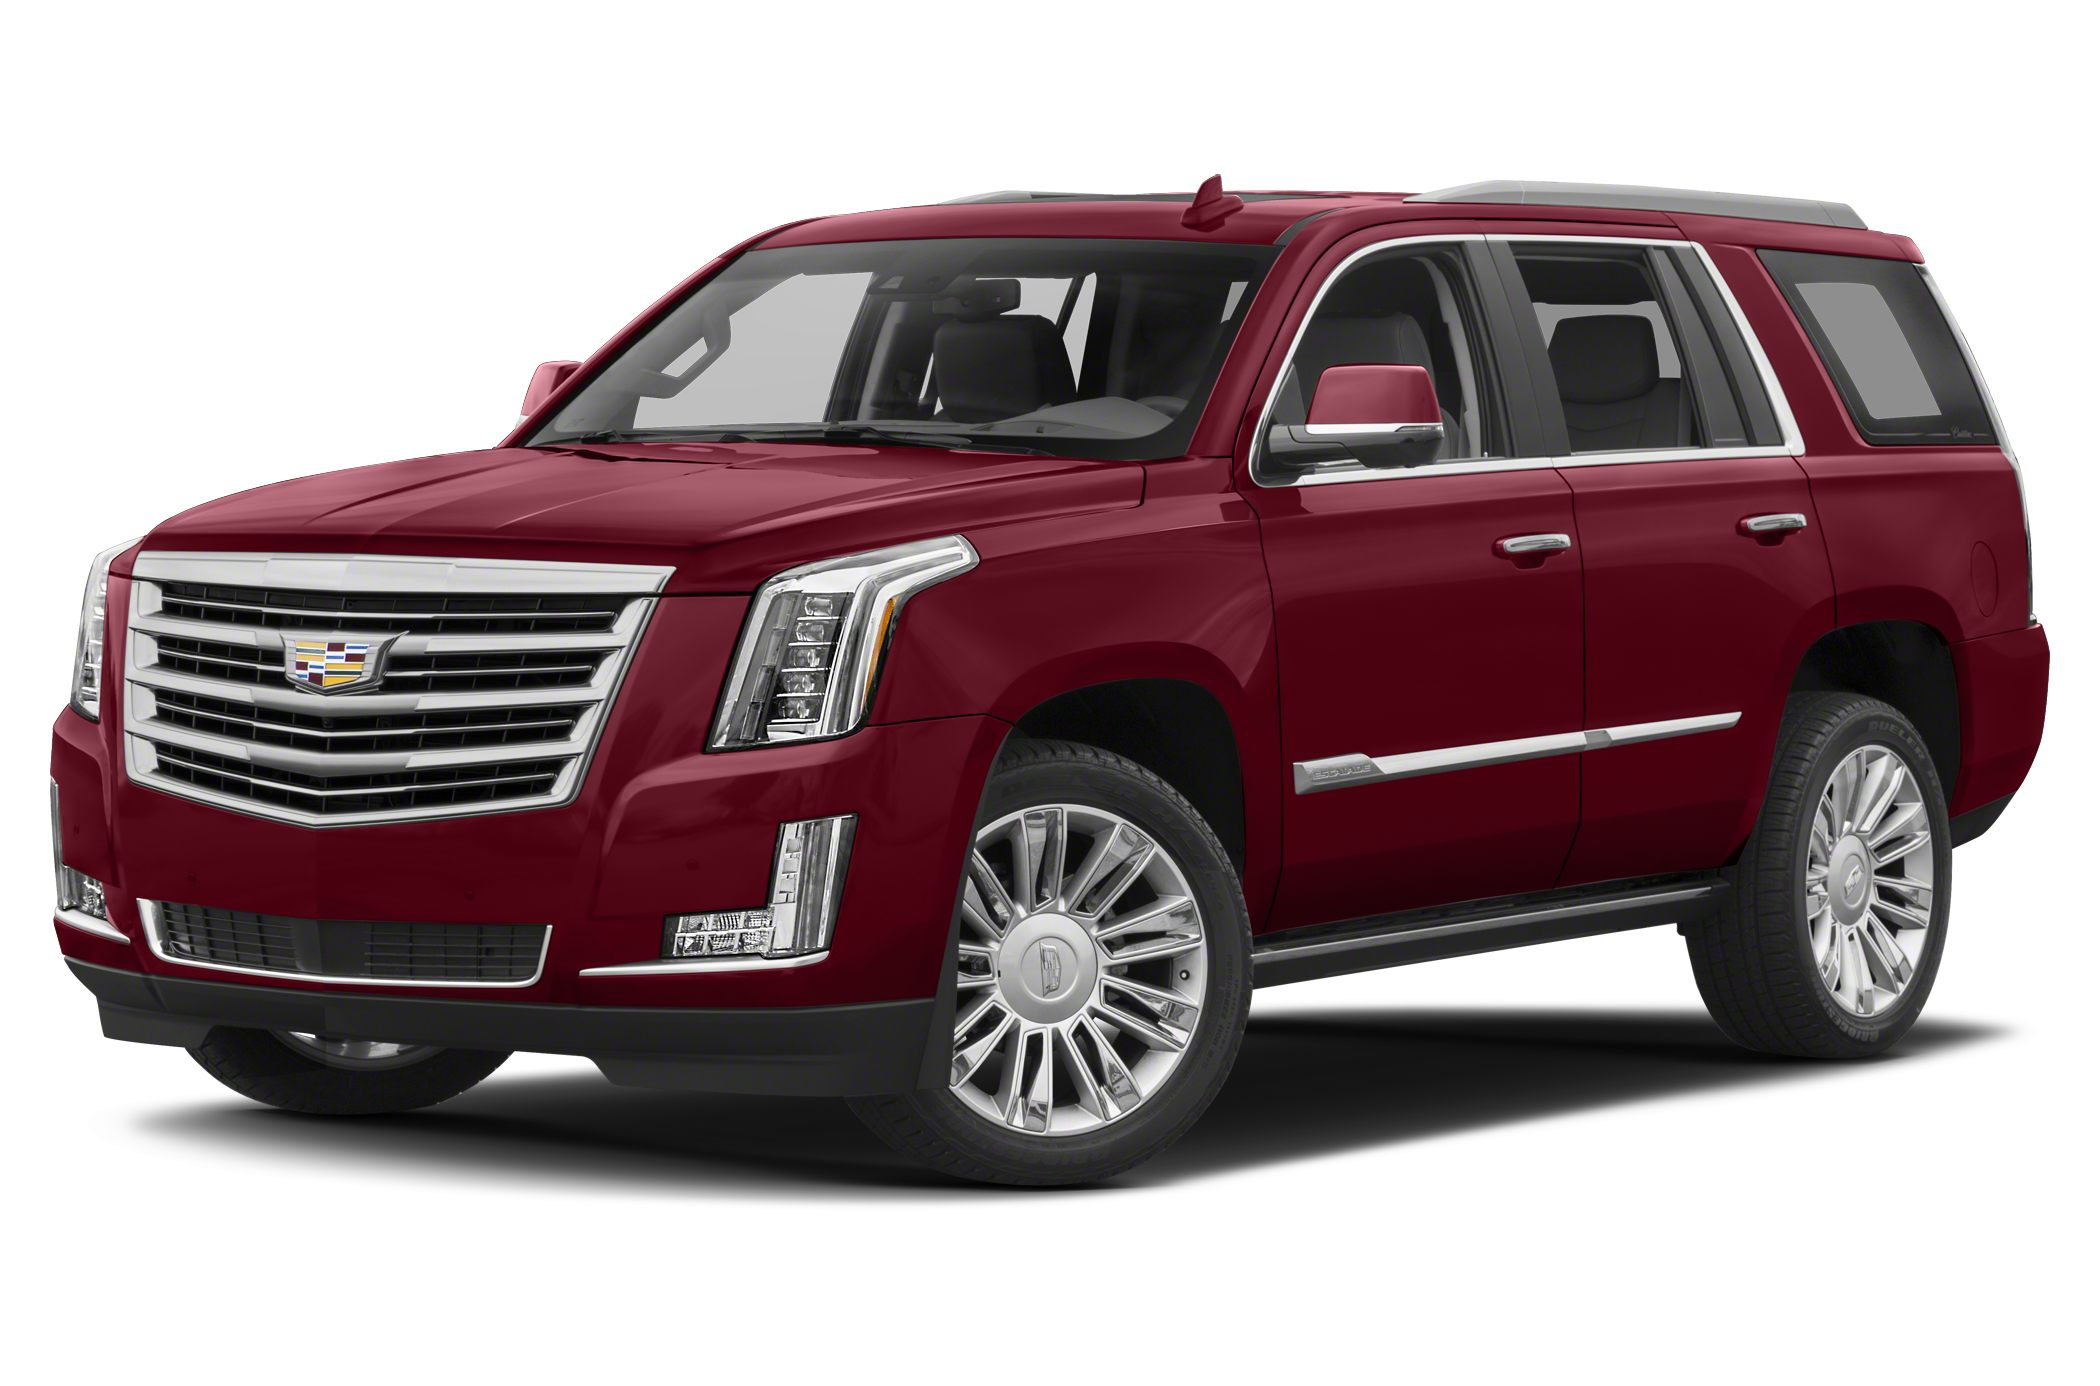 sale platinum much with cars is used how for escalade platin a cadillac classifieds pistonheads awd